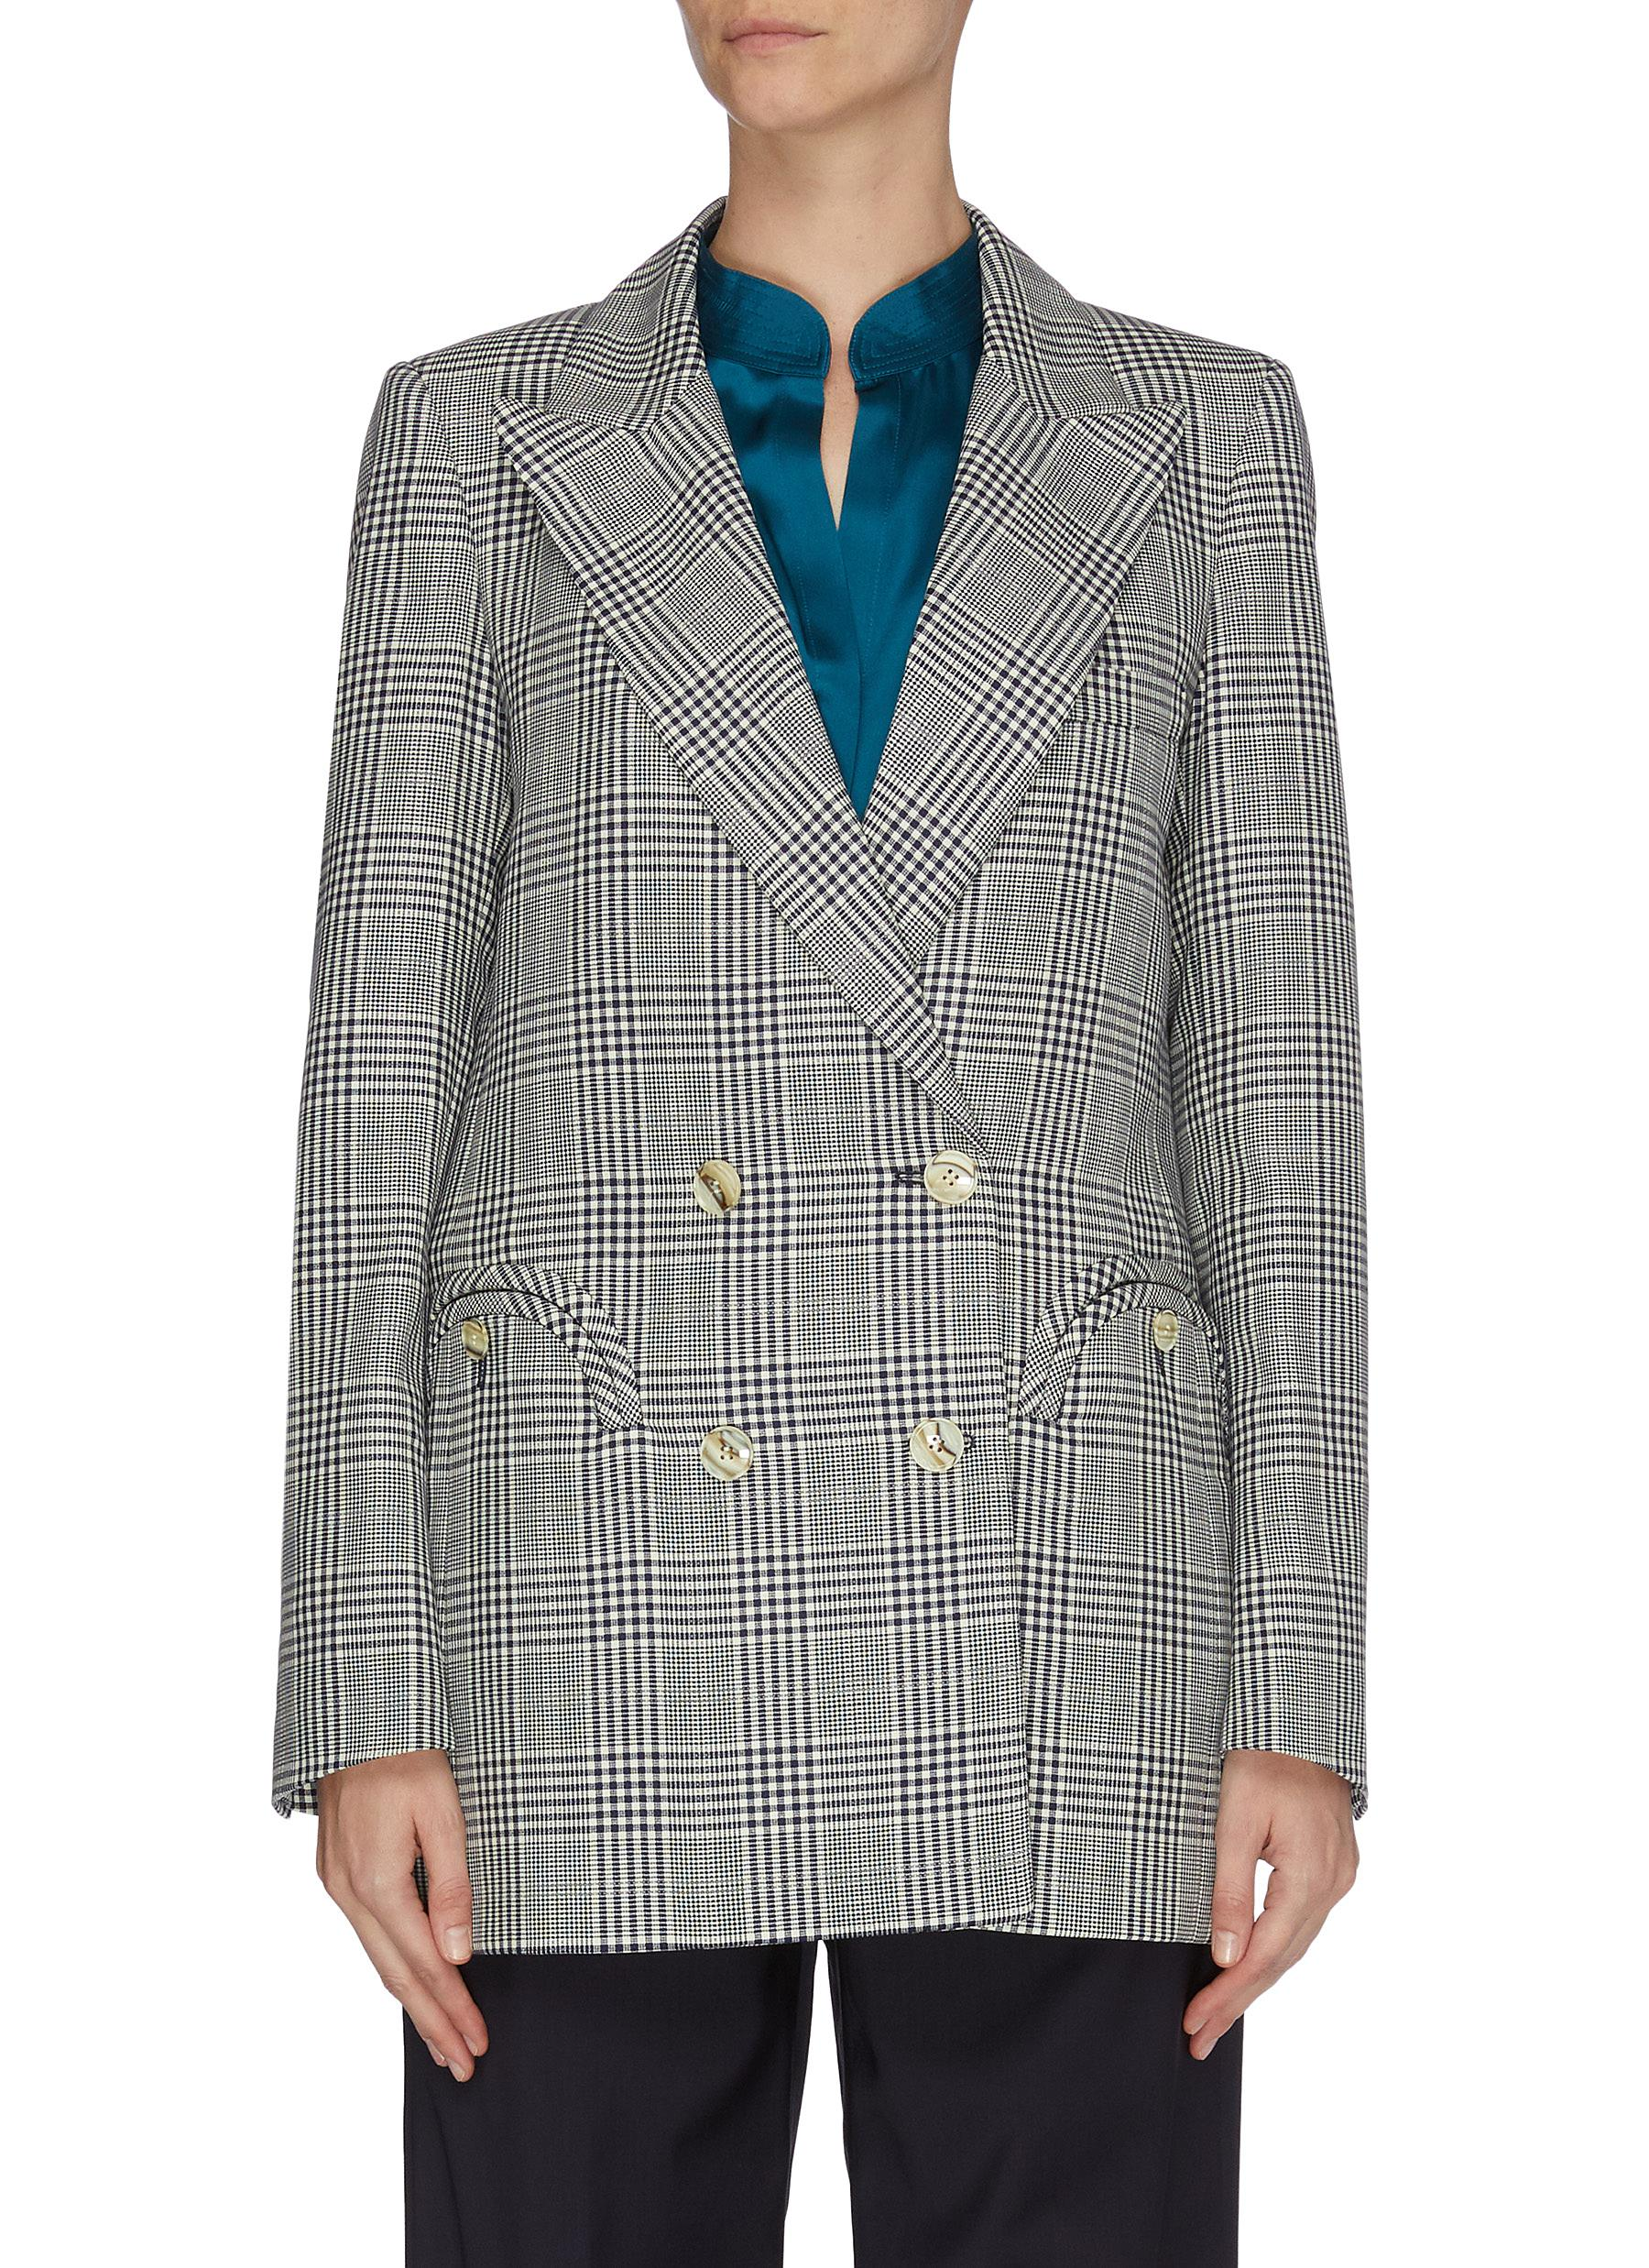 Buy Blazé Milano Blazers 'Everyday' check double breast blazer